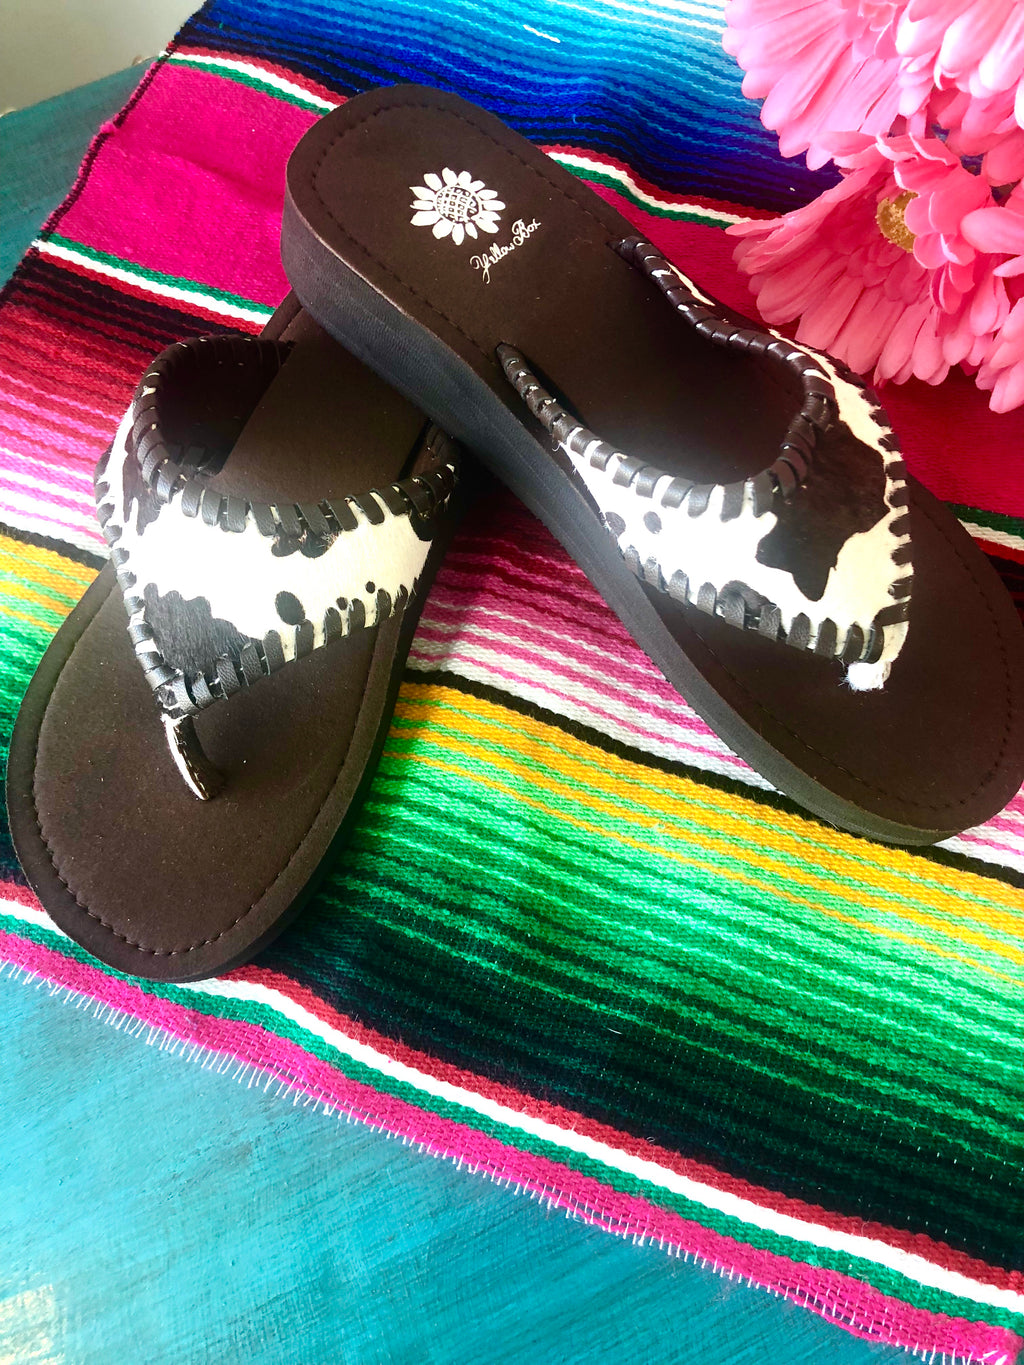 The Cowhide Fino Sandal